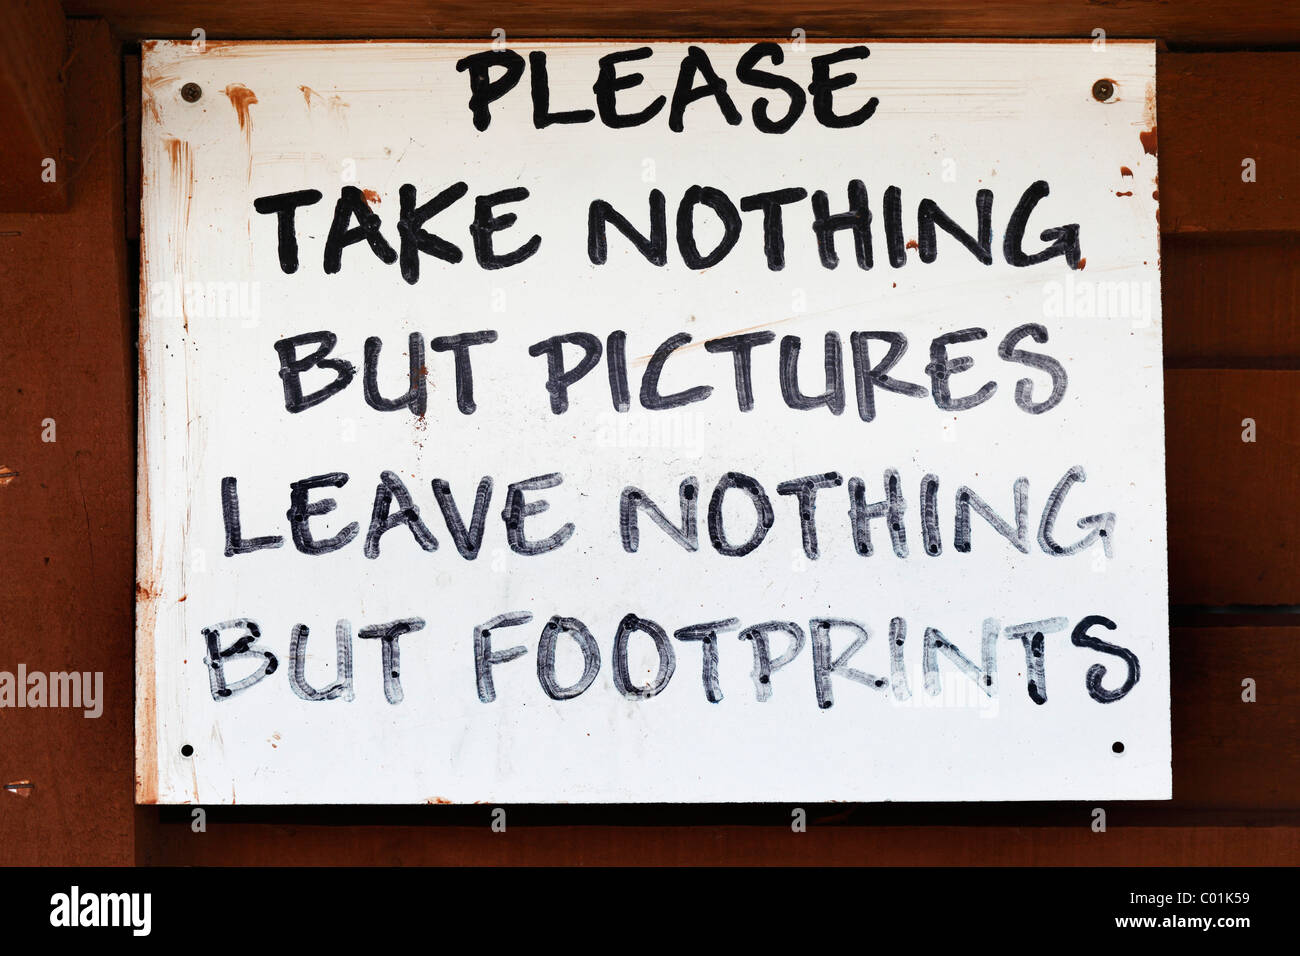 Handwritten sign 'Please take nothing but pictures, leave nothing but footprints', County Offaly, Republic - Stock Image